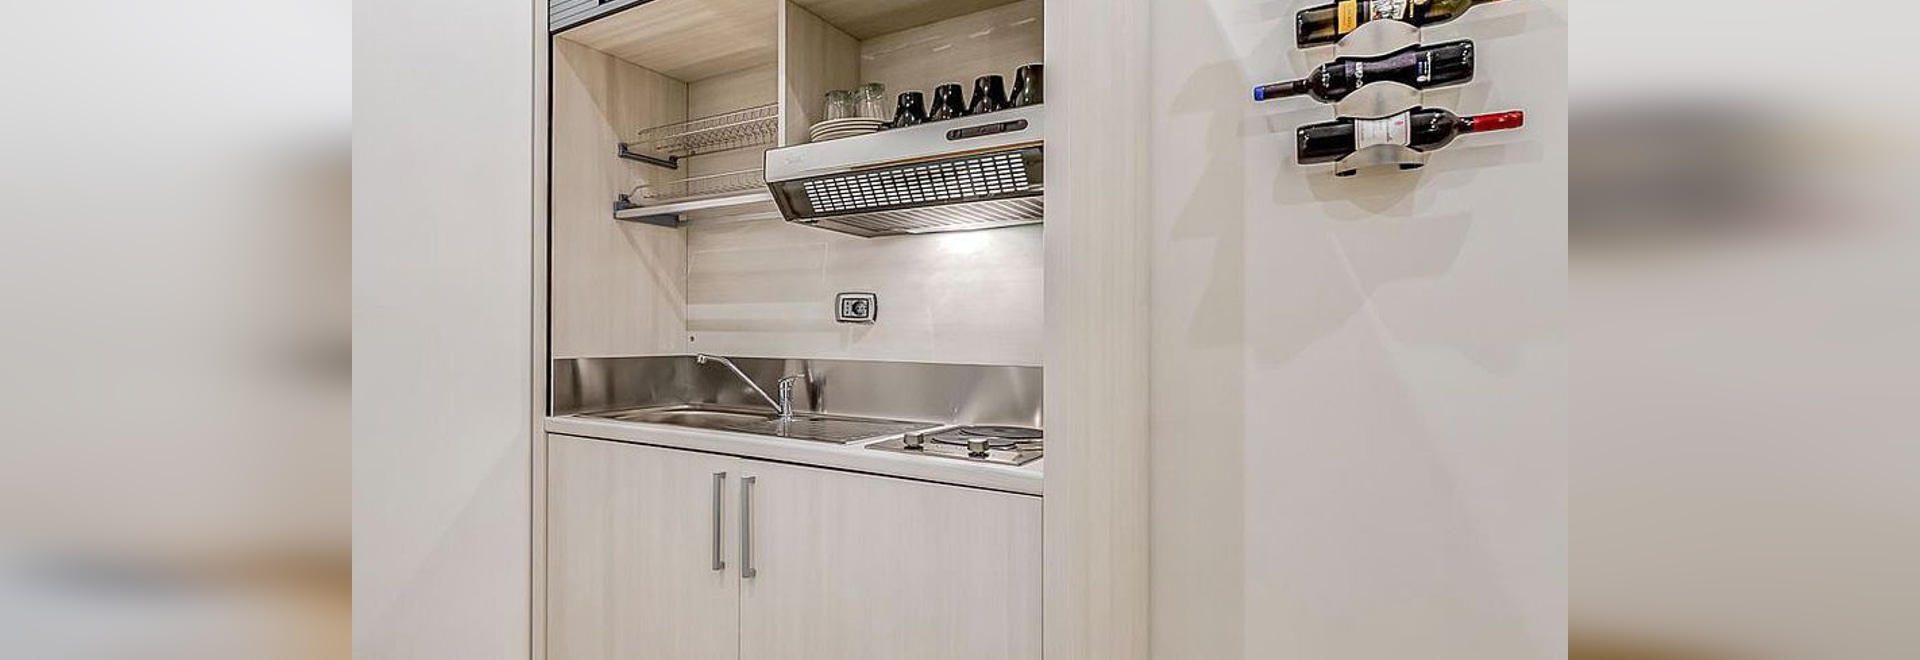 MINI-KITCHENS FOR MINI-APARTMENTS-CONTRACT USE - by Mobilspazio